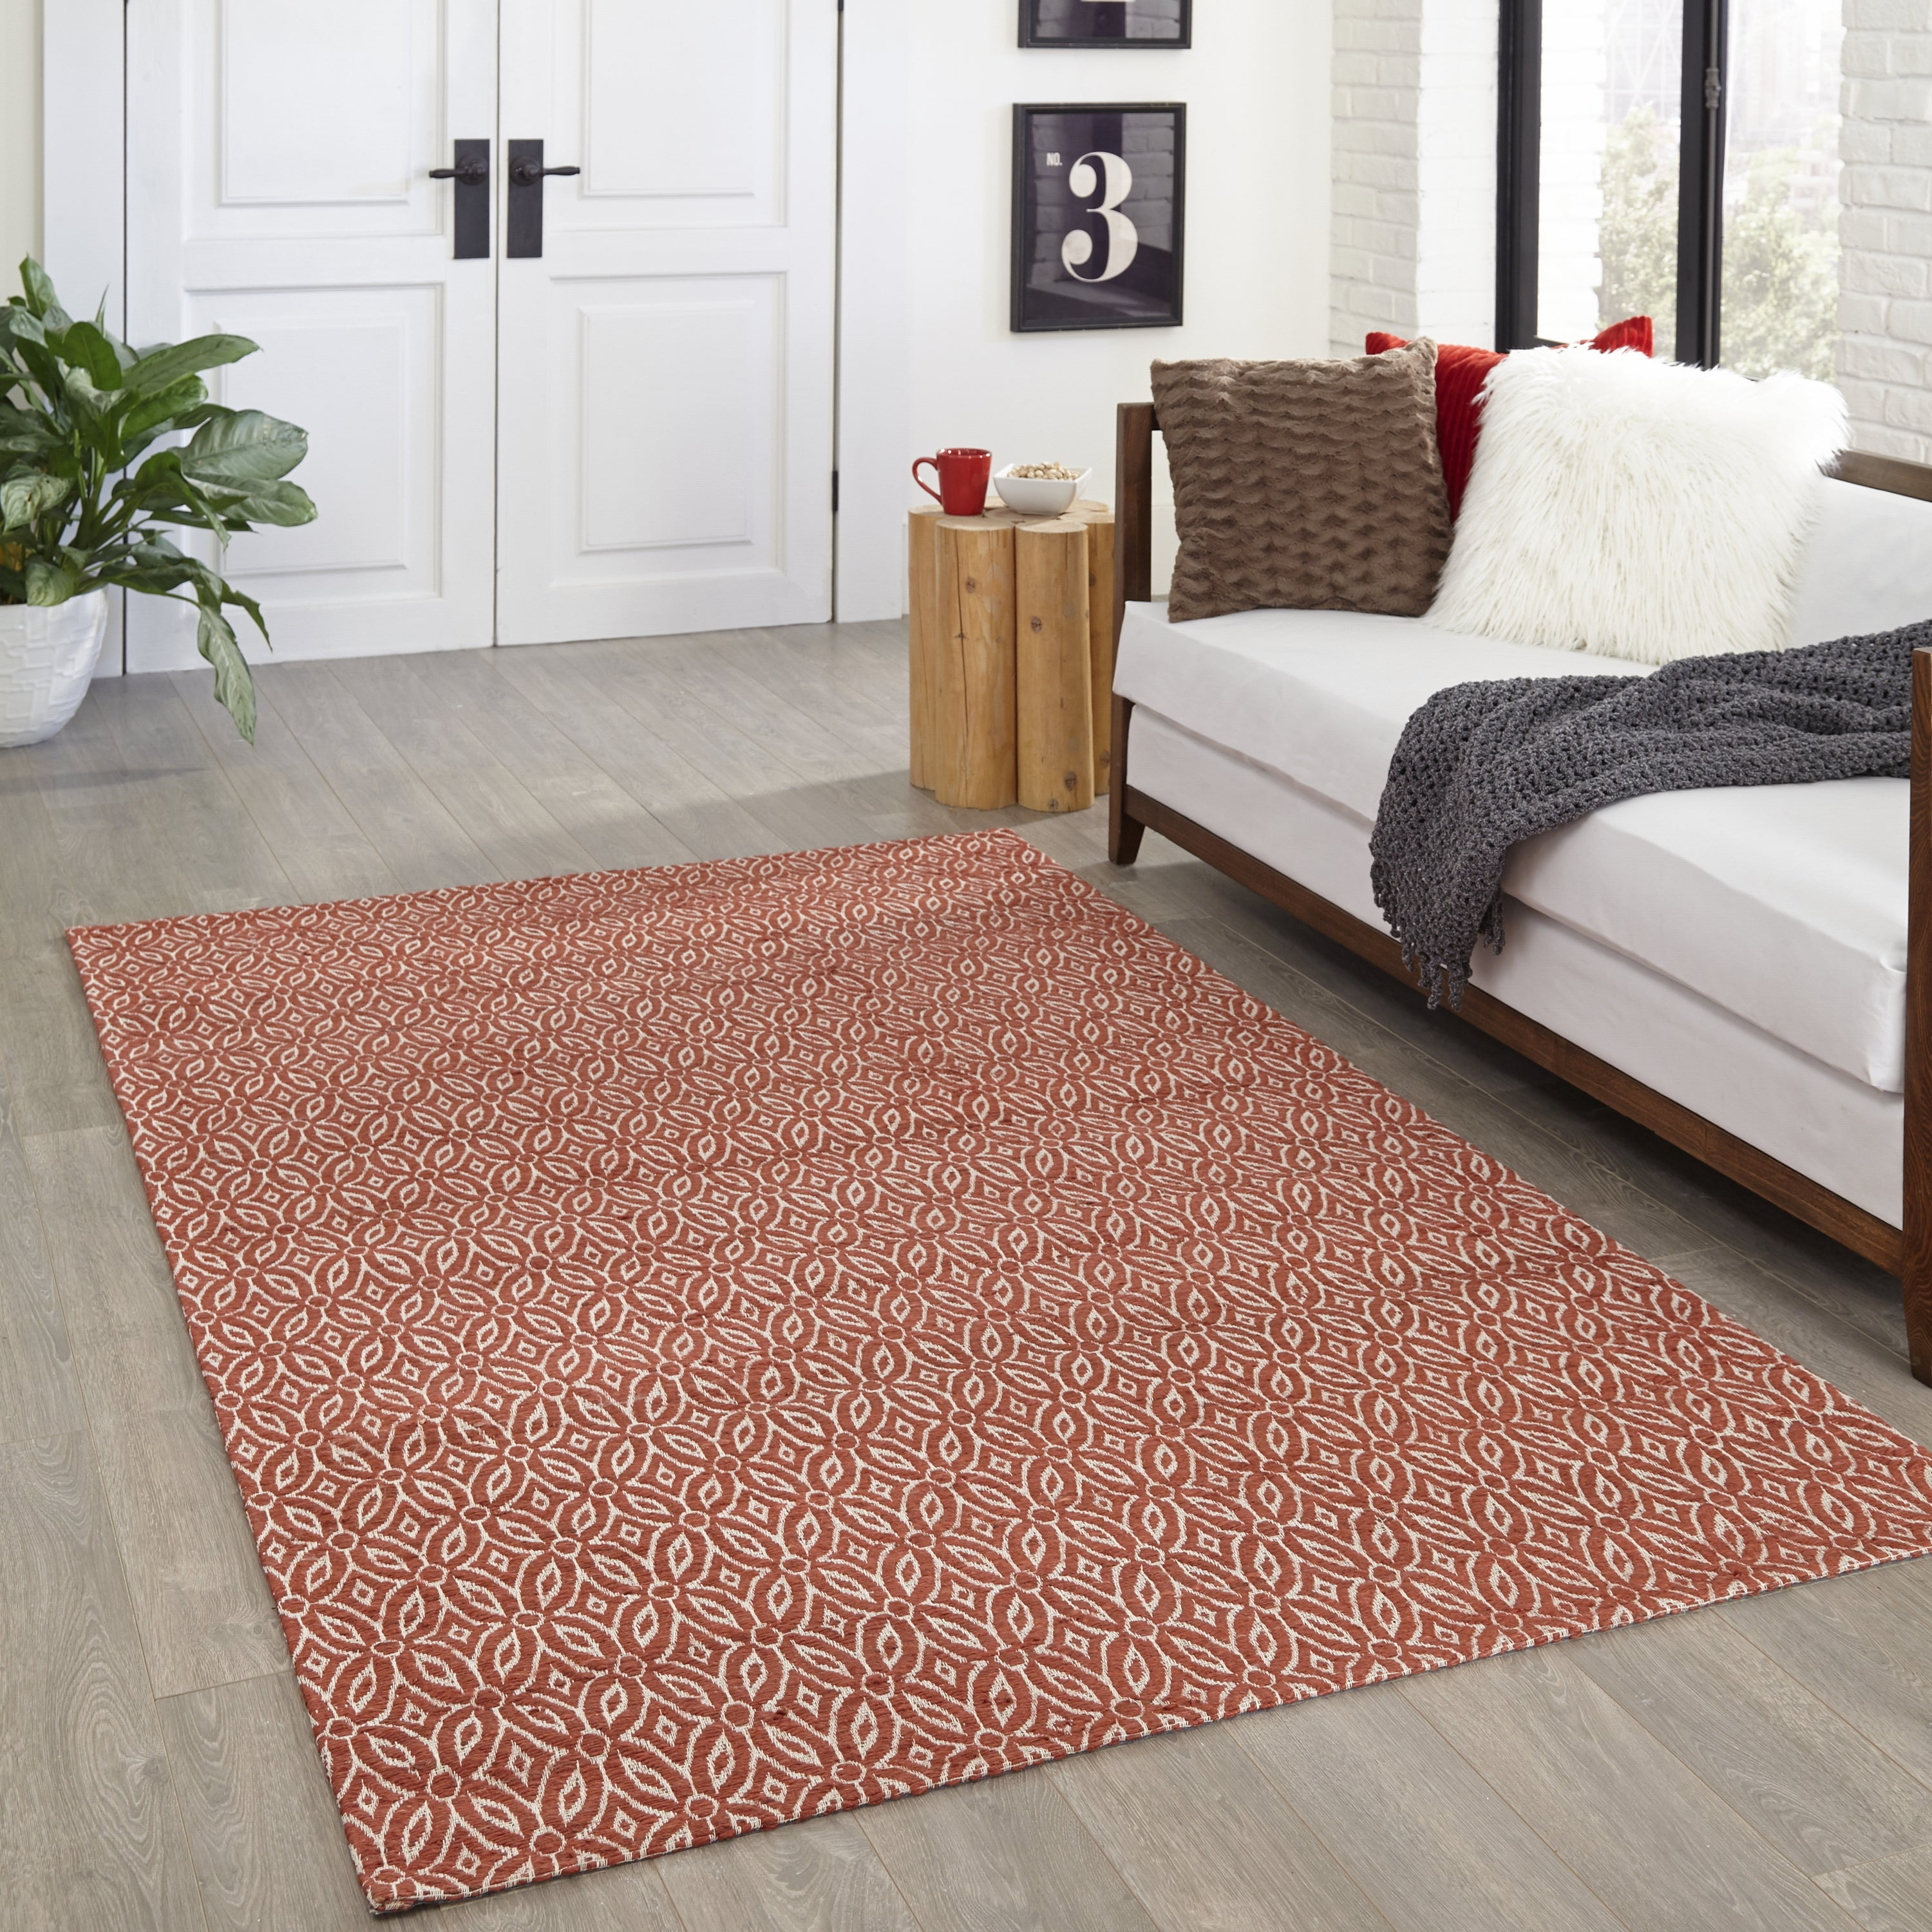 Rectangle Red Geometric Hand Woven Jute & Natural Fibers Transitional recommended for Kitchen, Bedroom, Bathroom, Dining Room, Office, Hallway, Living Room